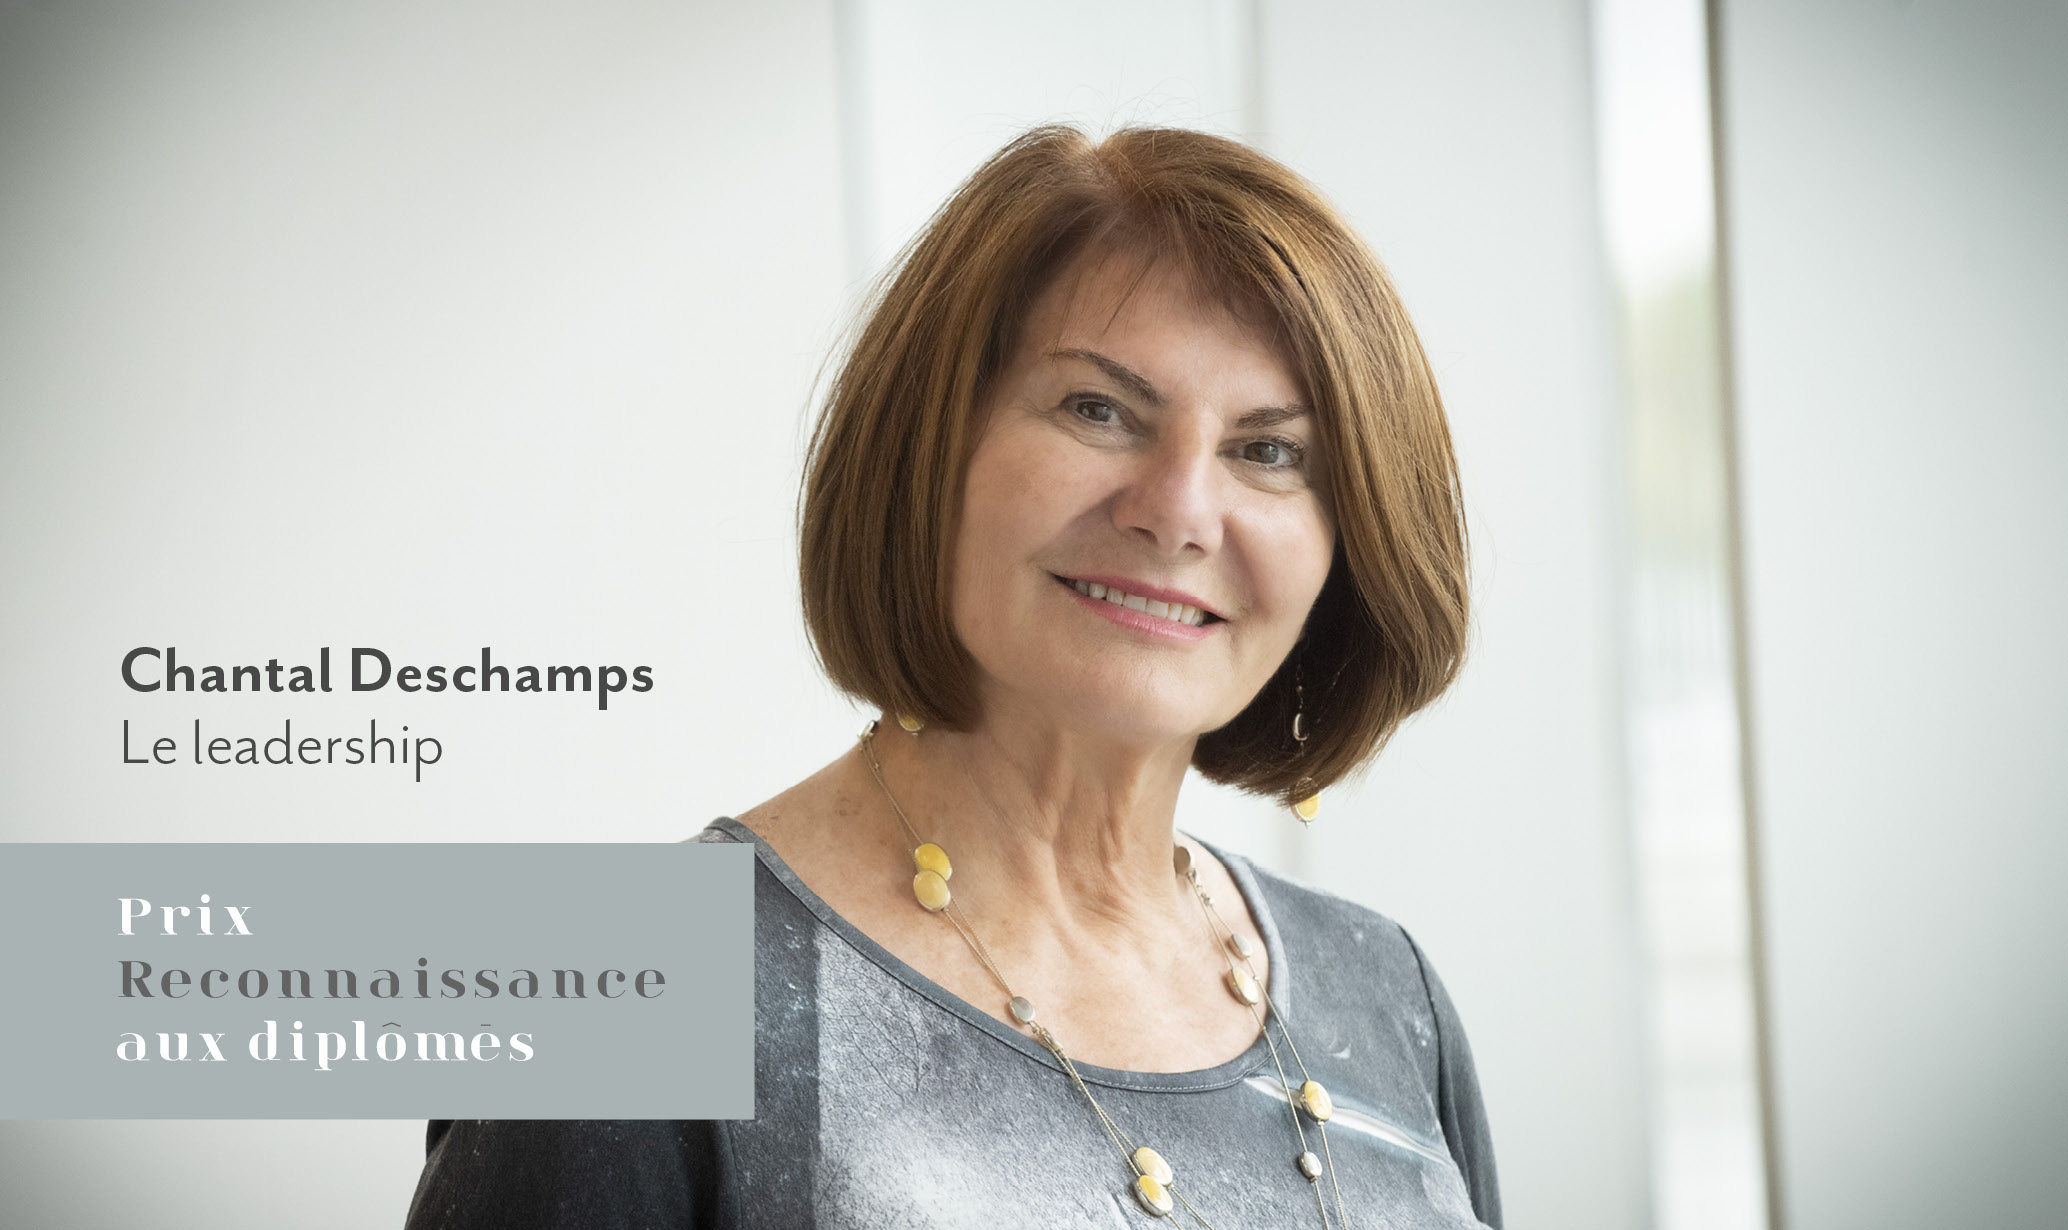 Chantal Deschamps - Le leadership